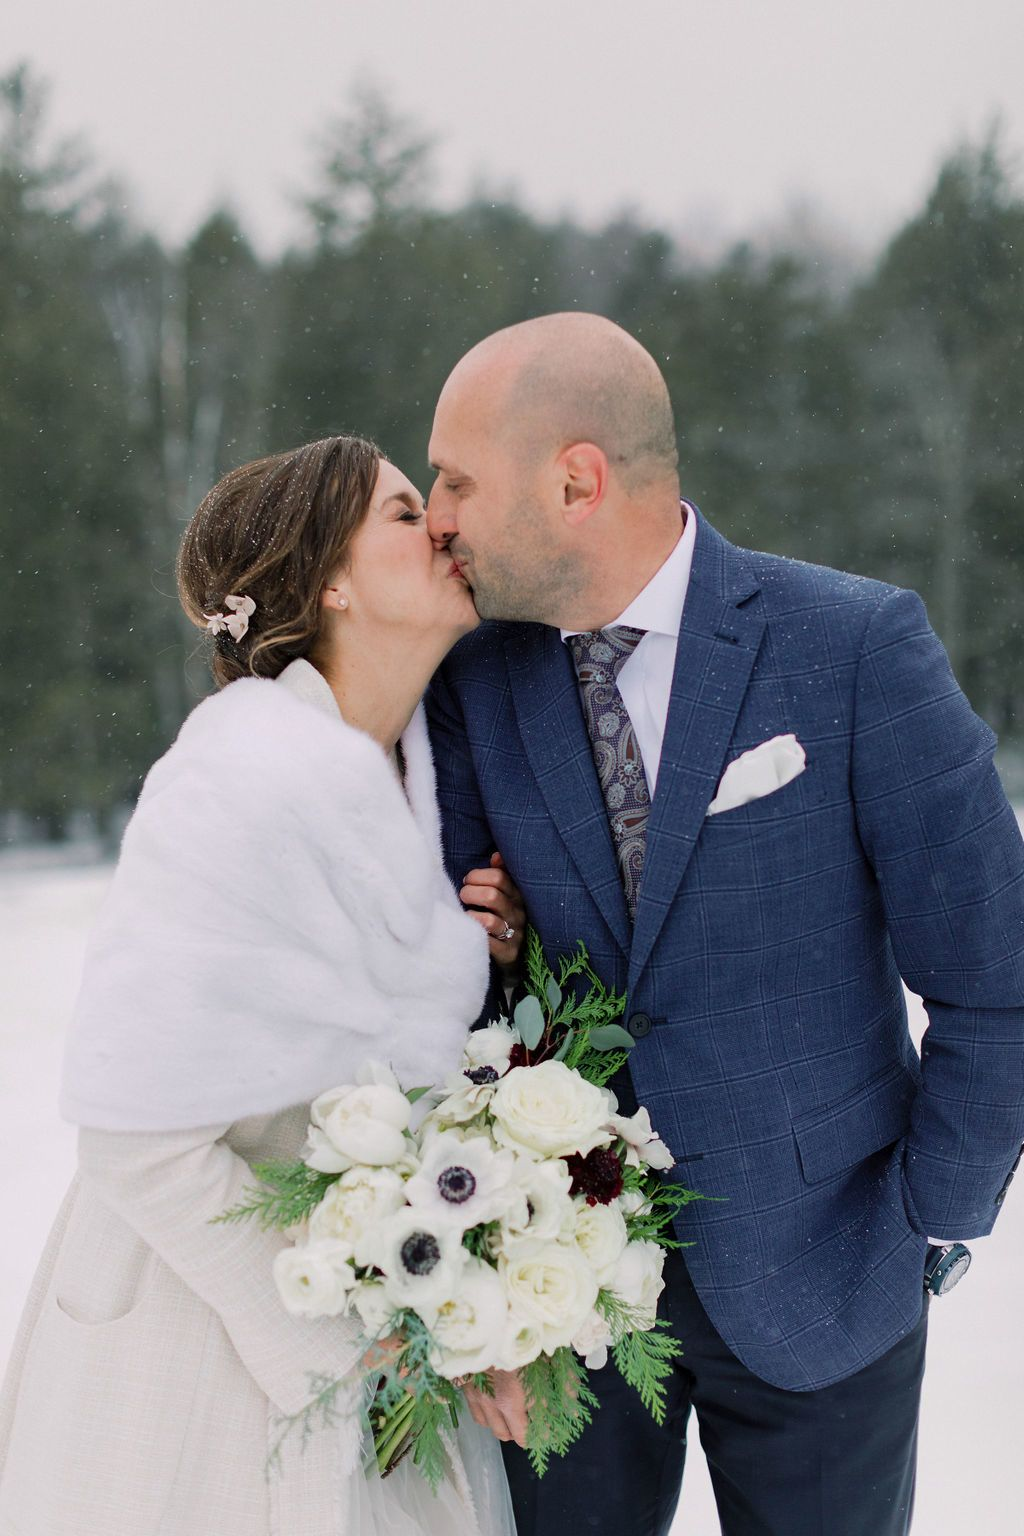 You Can Feel The Love At This Winter Wonderland Wedding ...